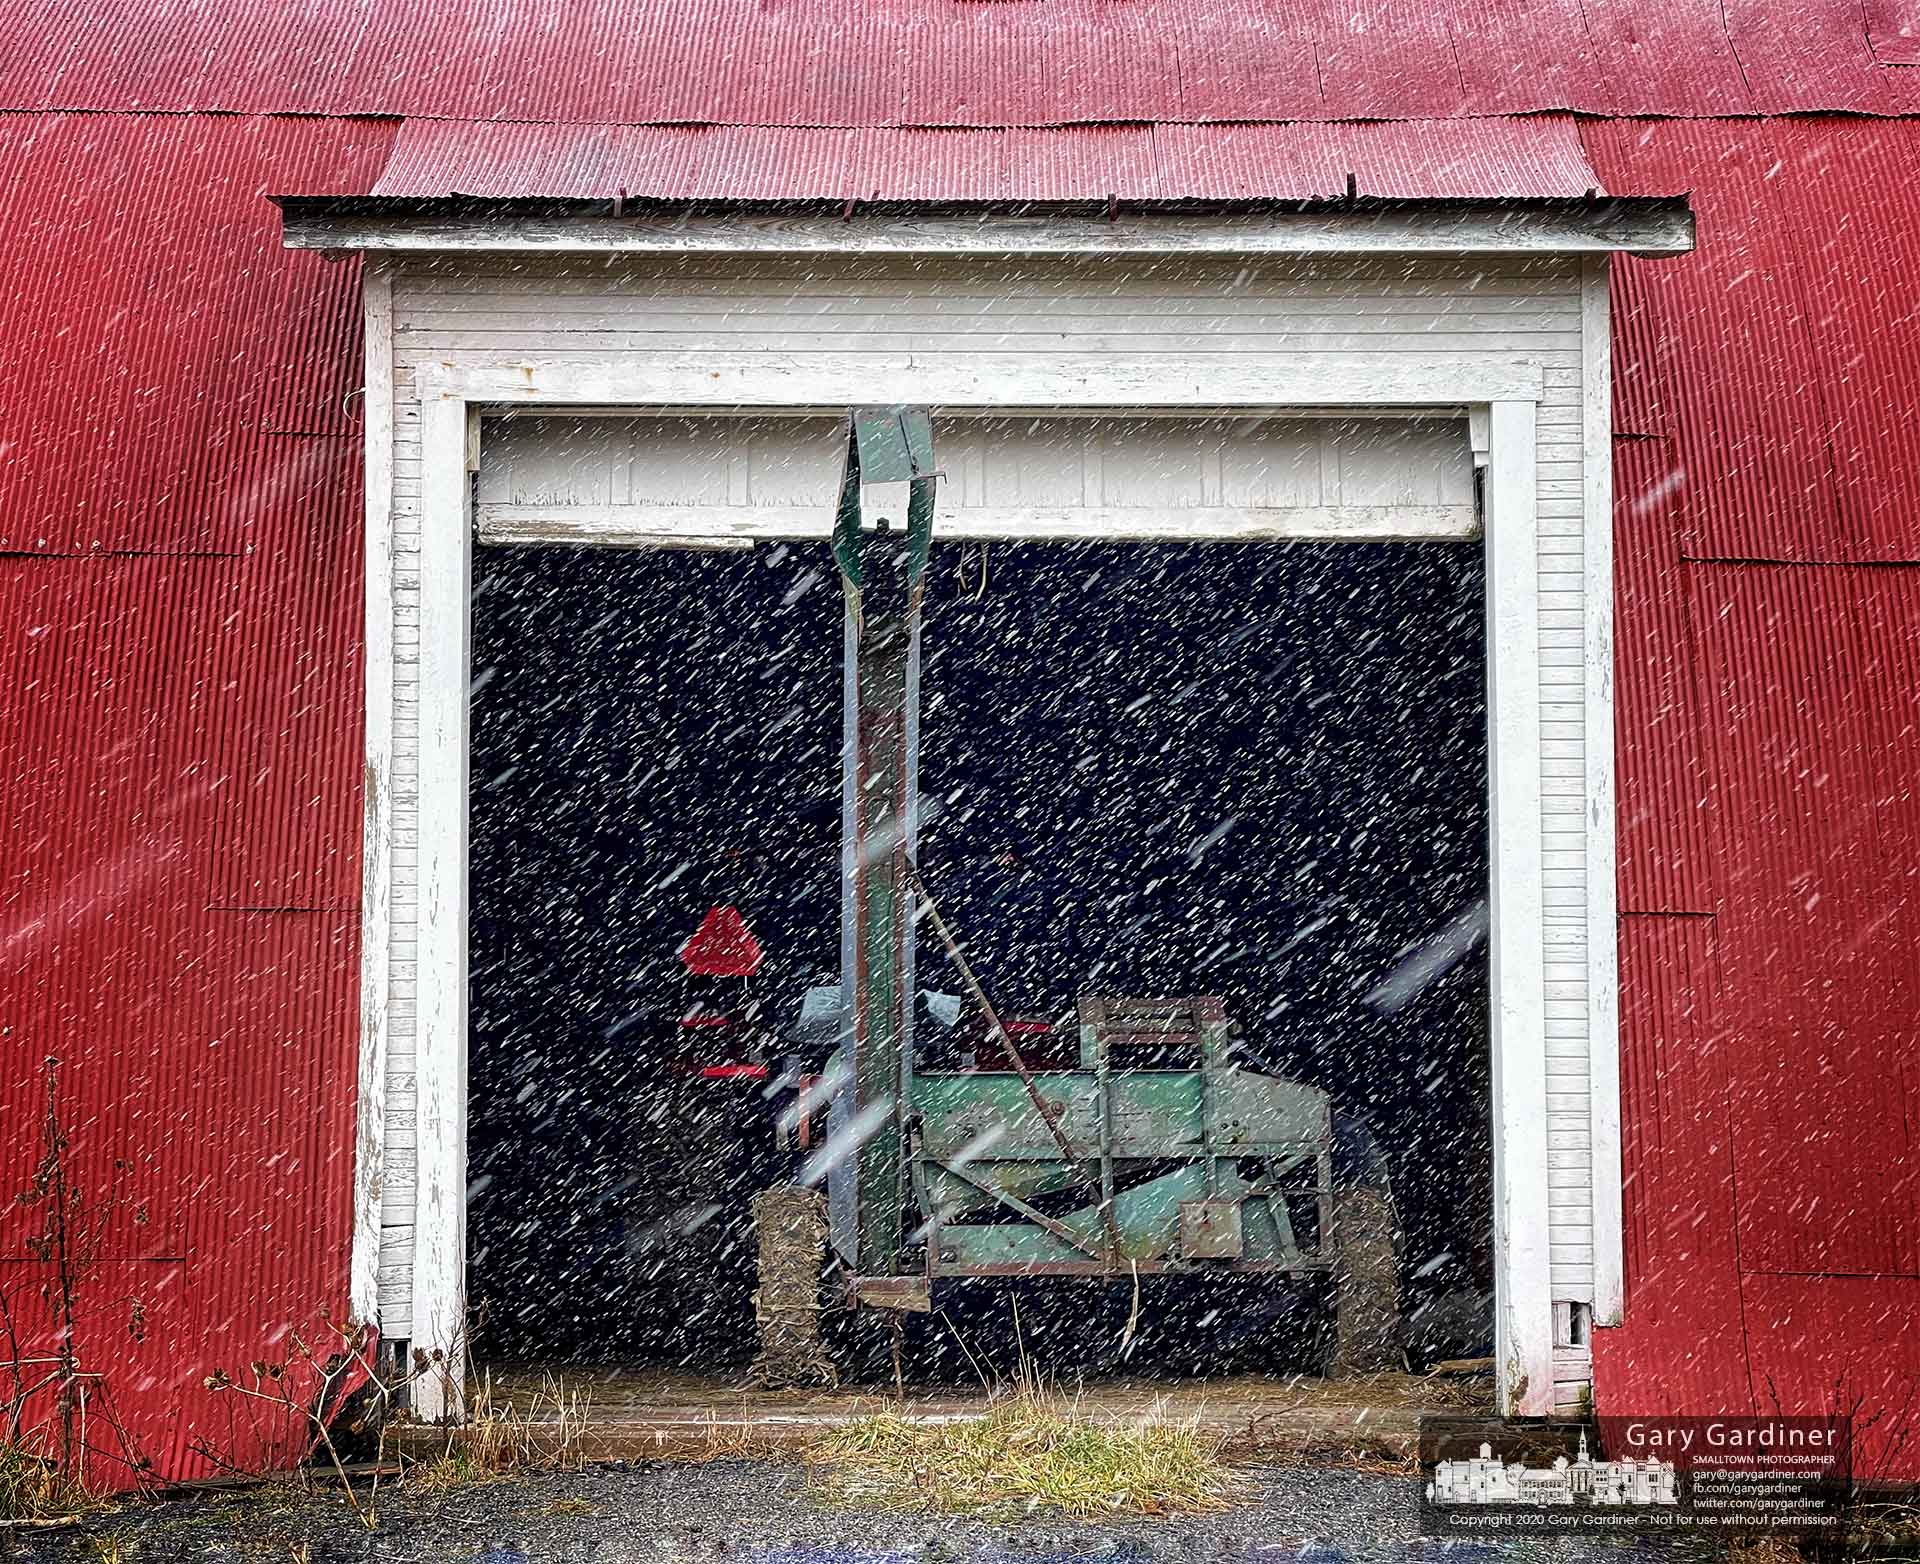 A heavy snow squall blows across the open door of the barn at the Braun Farm where a corn picker waits for repairs. My Final Photo for Jan. 17, 2021.